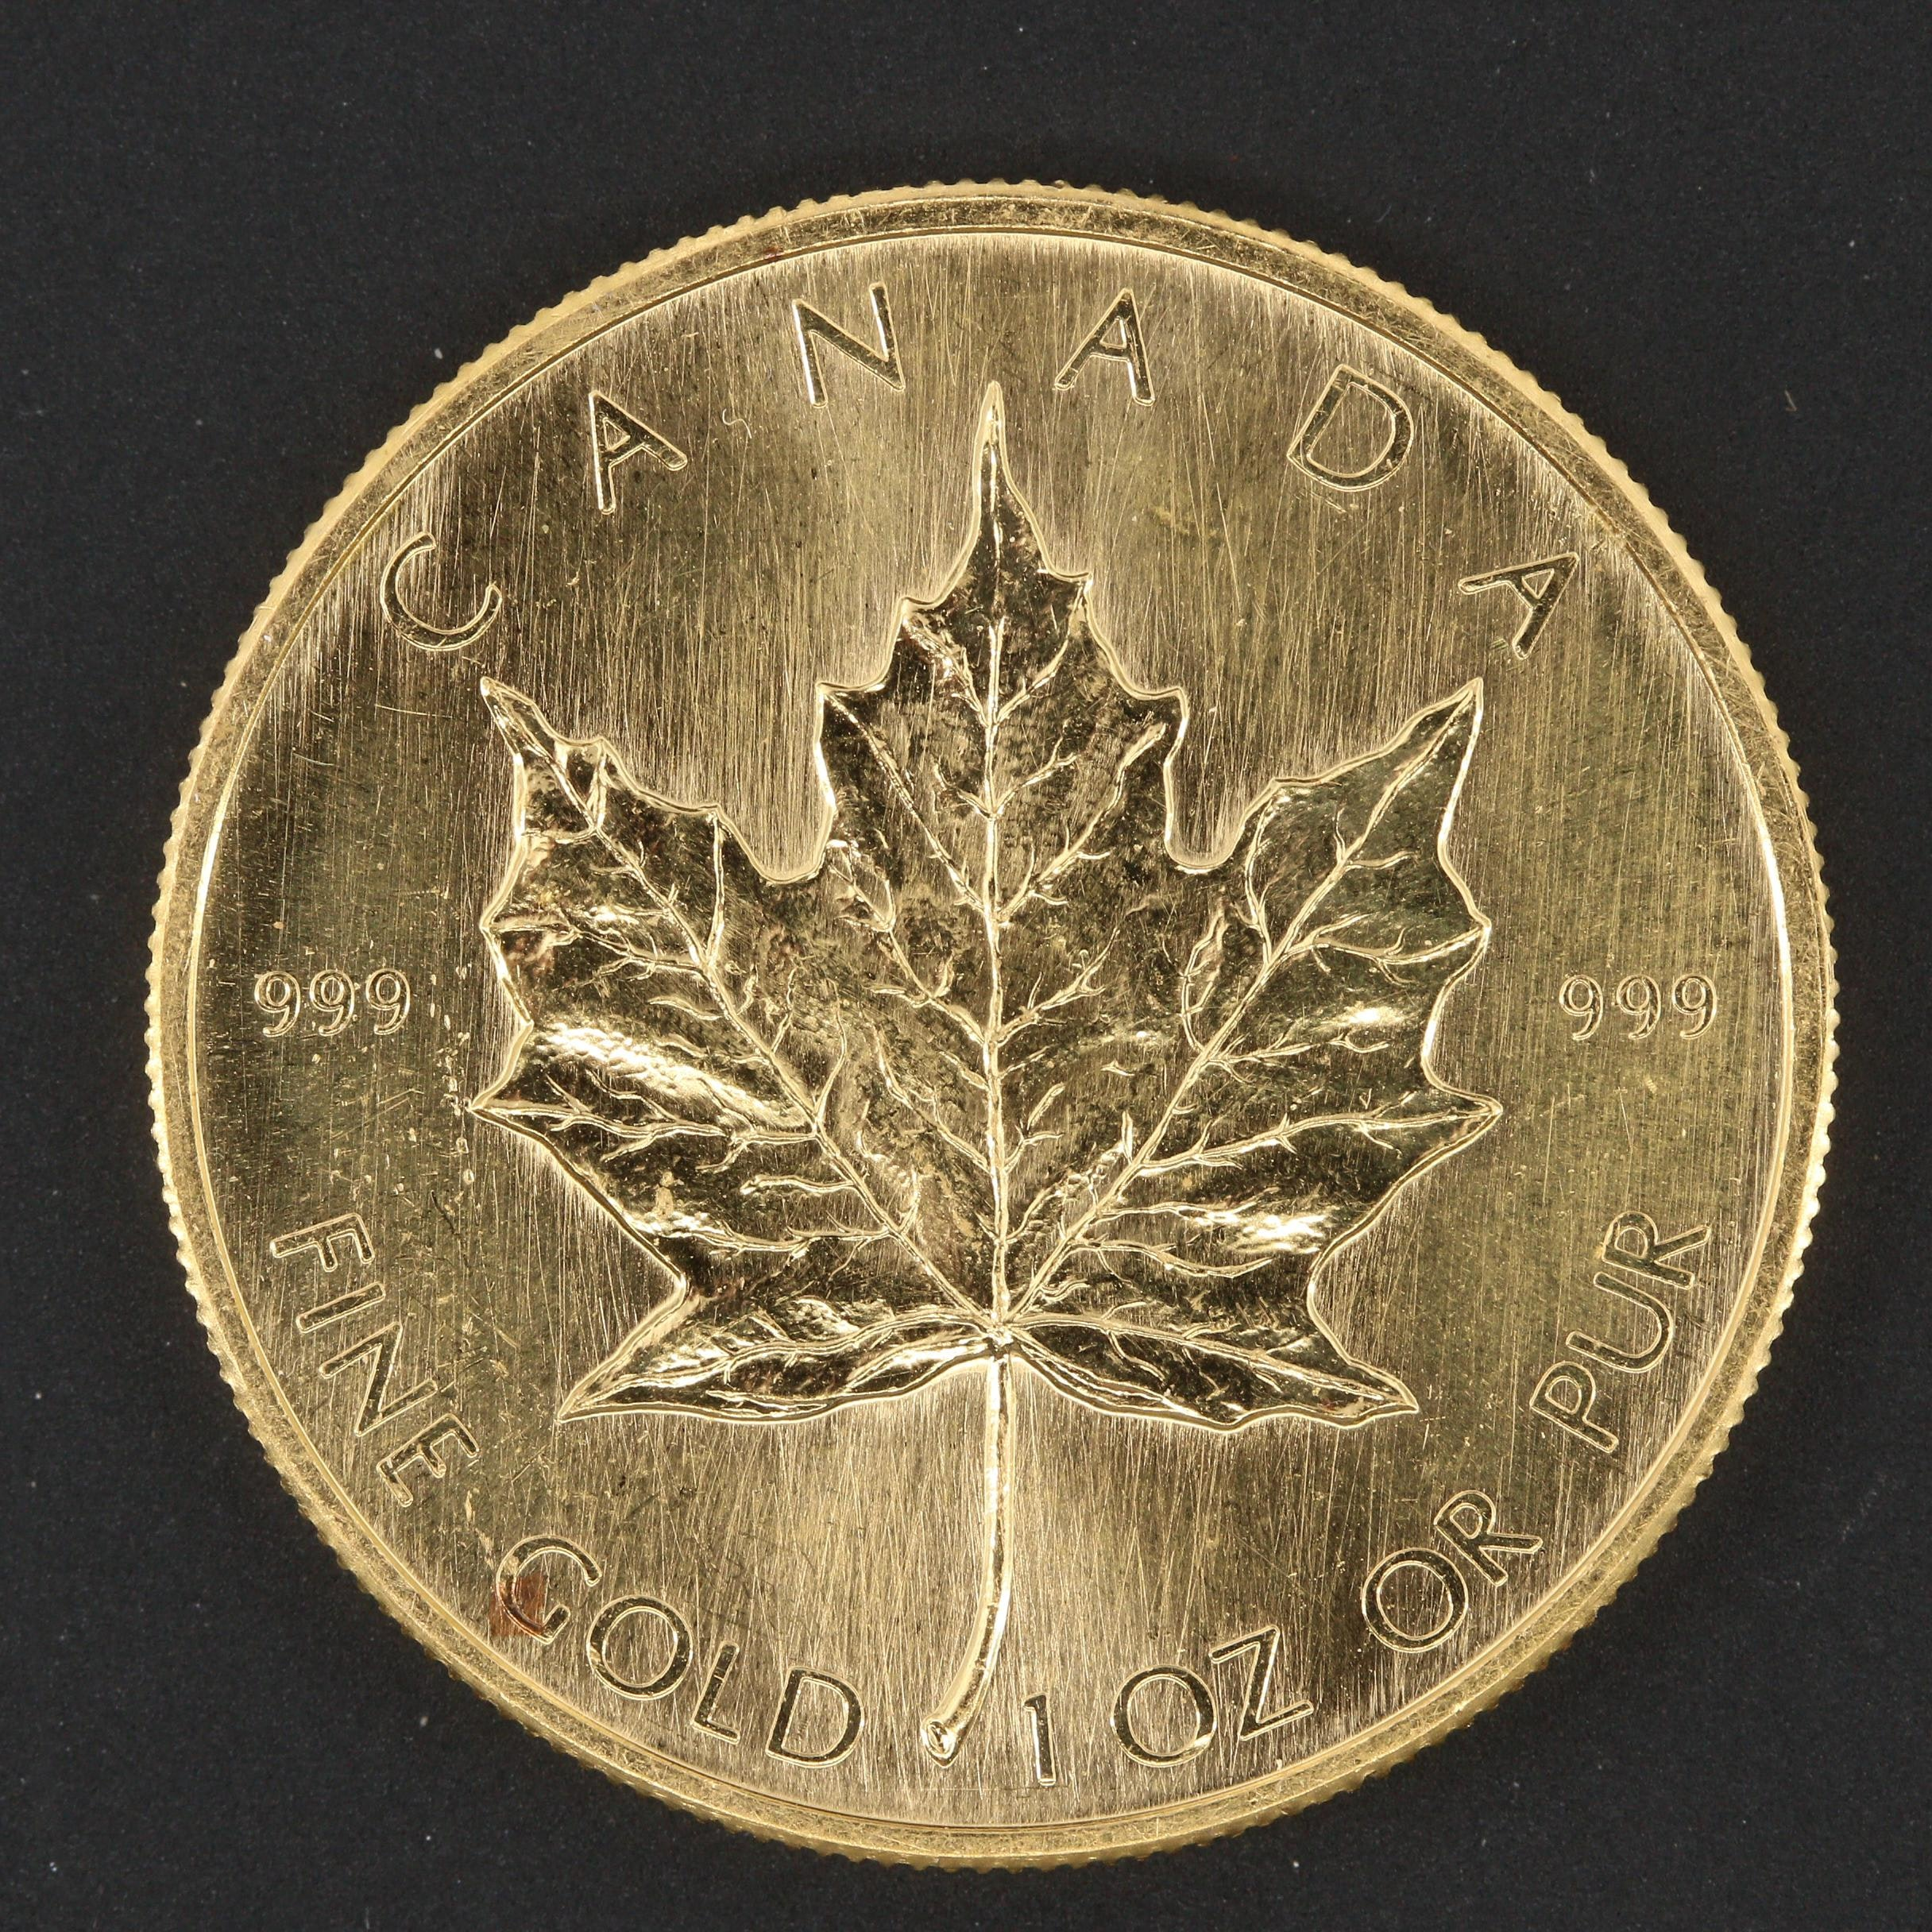 1980 $50 Canadian Gold Maple Leaf